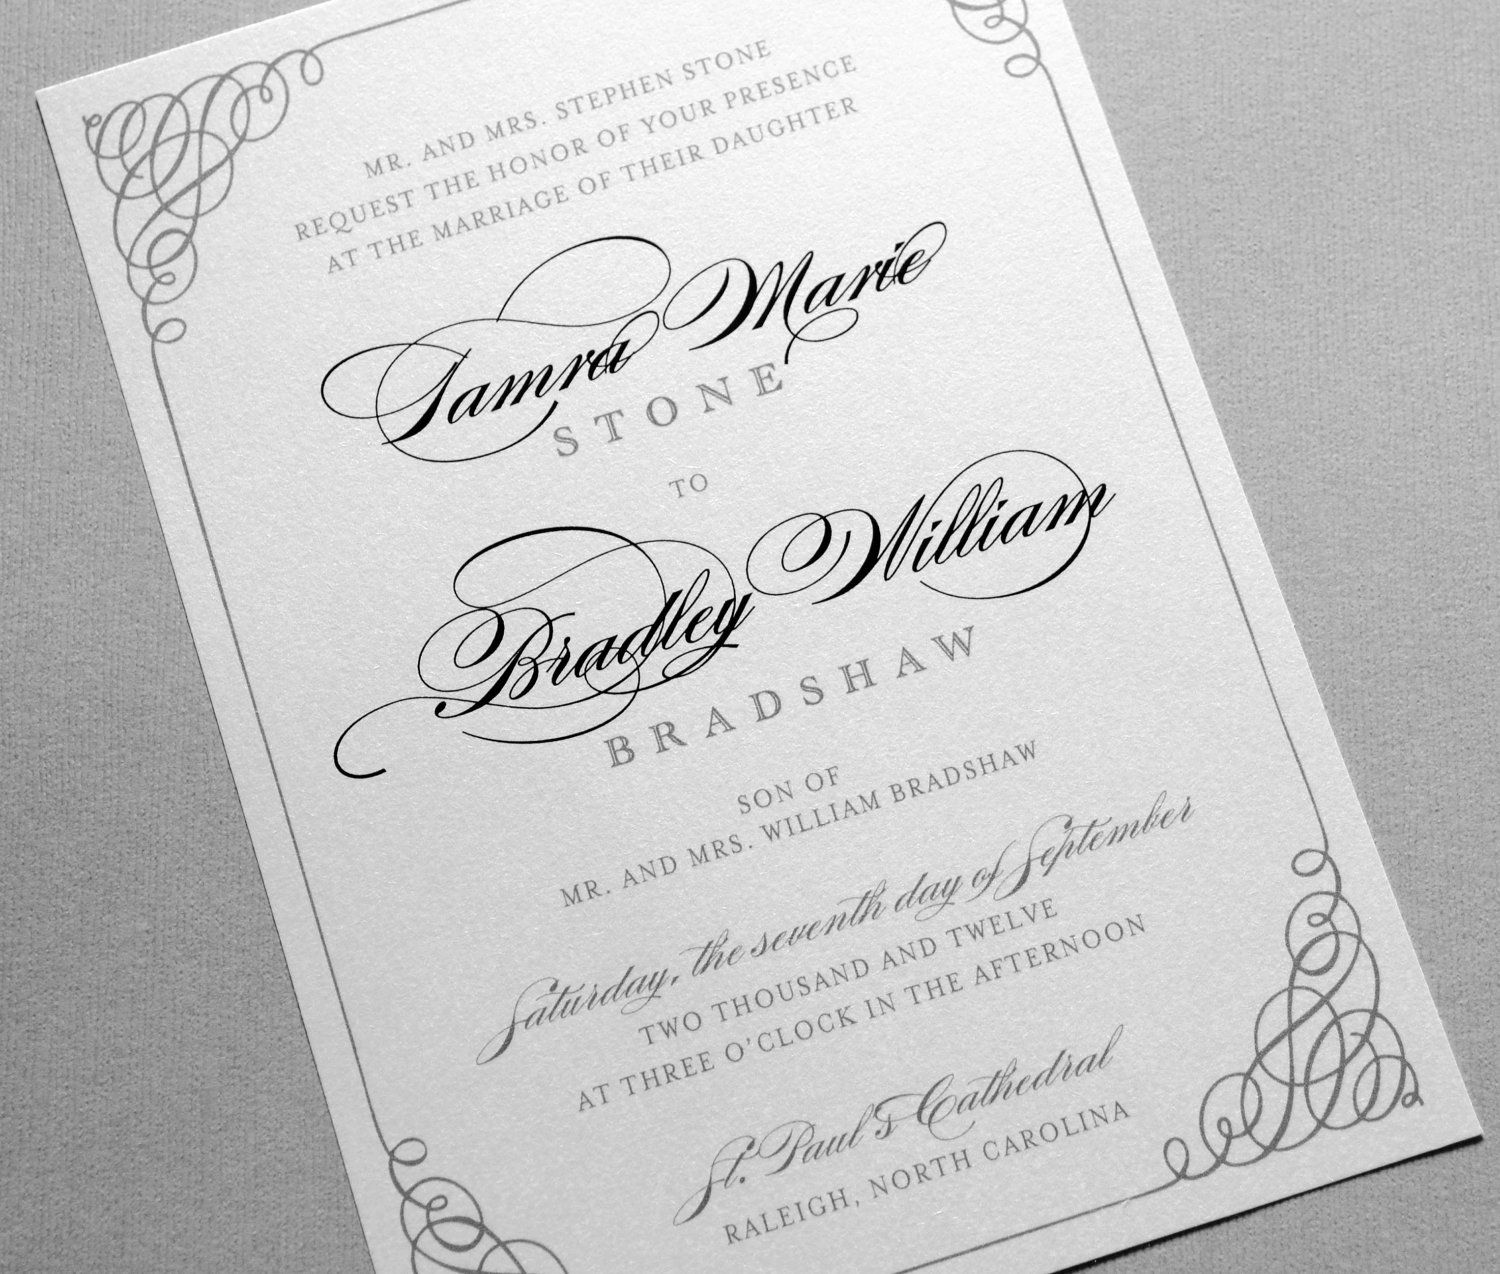 Formal Attire On Wedding Invitation: Formal Invite Wording. Change Honor To Honour For